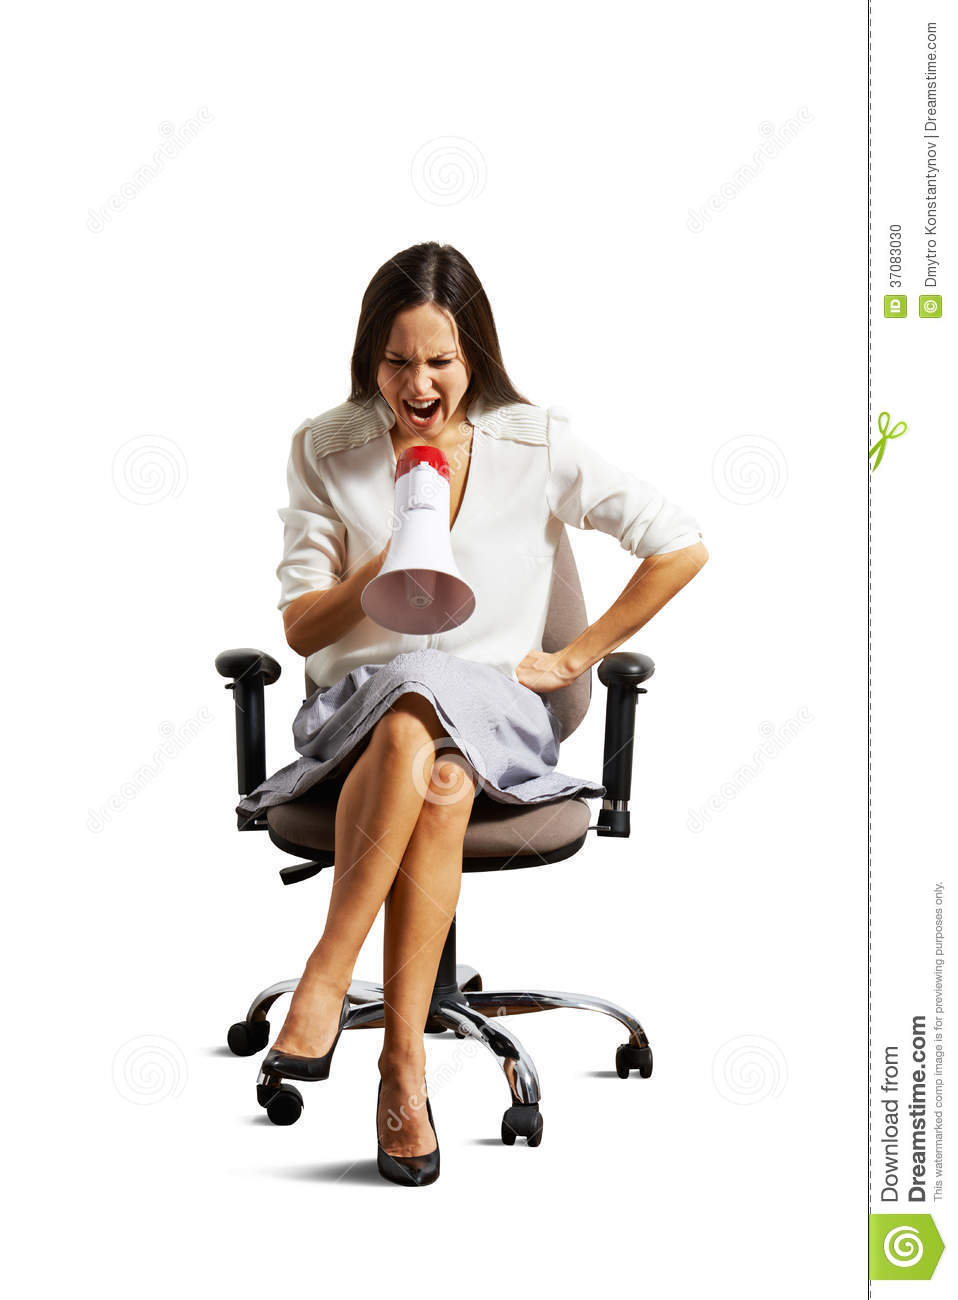 Woman Sitting On The Chair And Screaming Stock Photo   Image  37083030